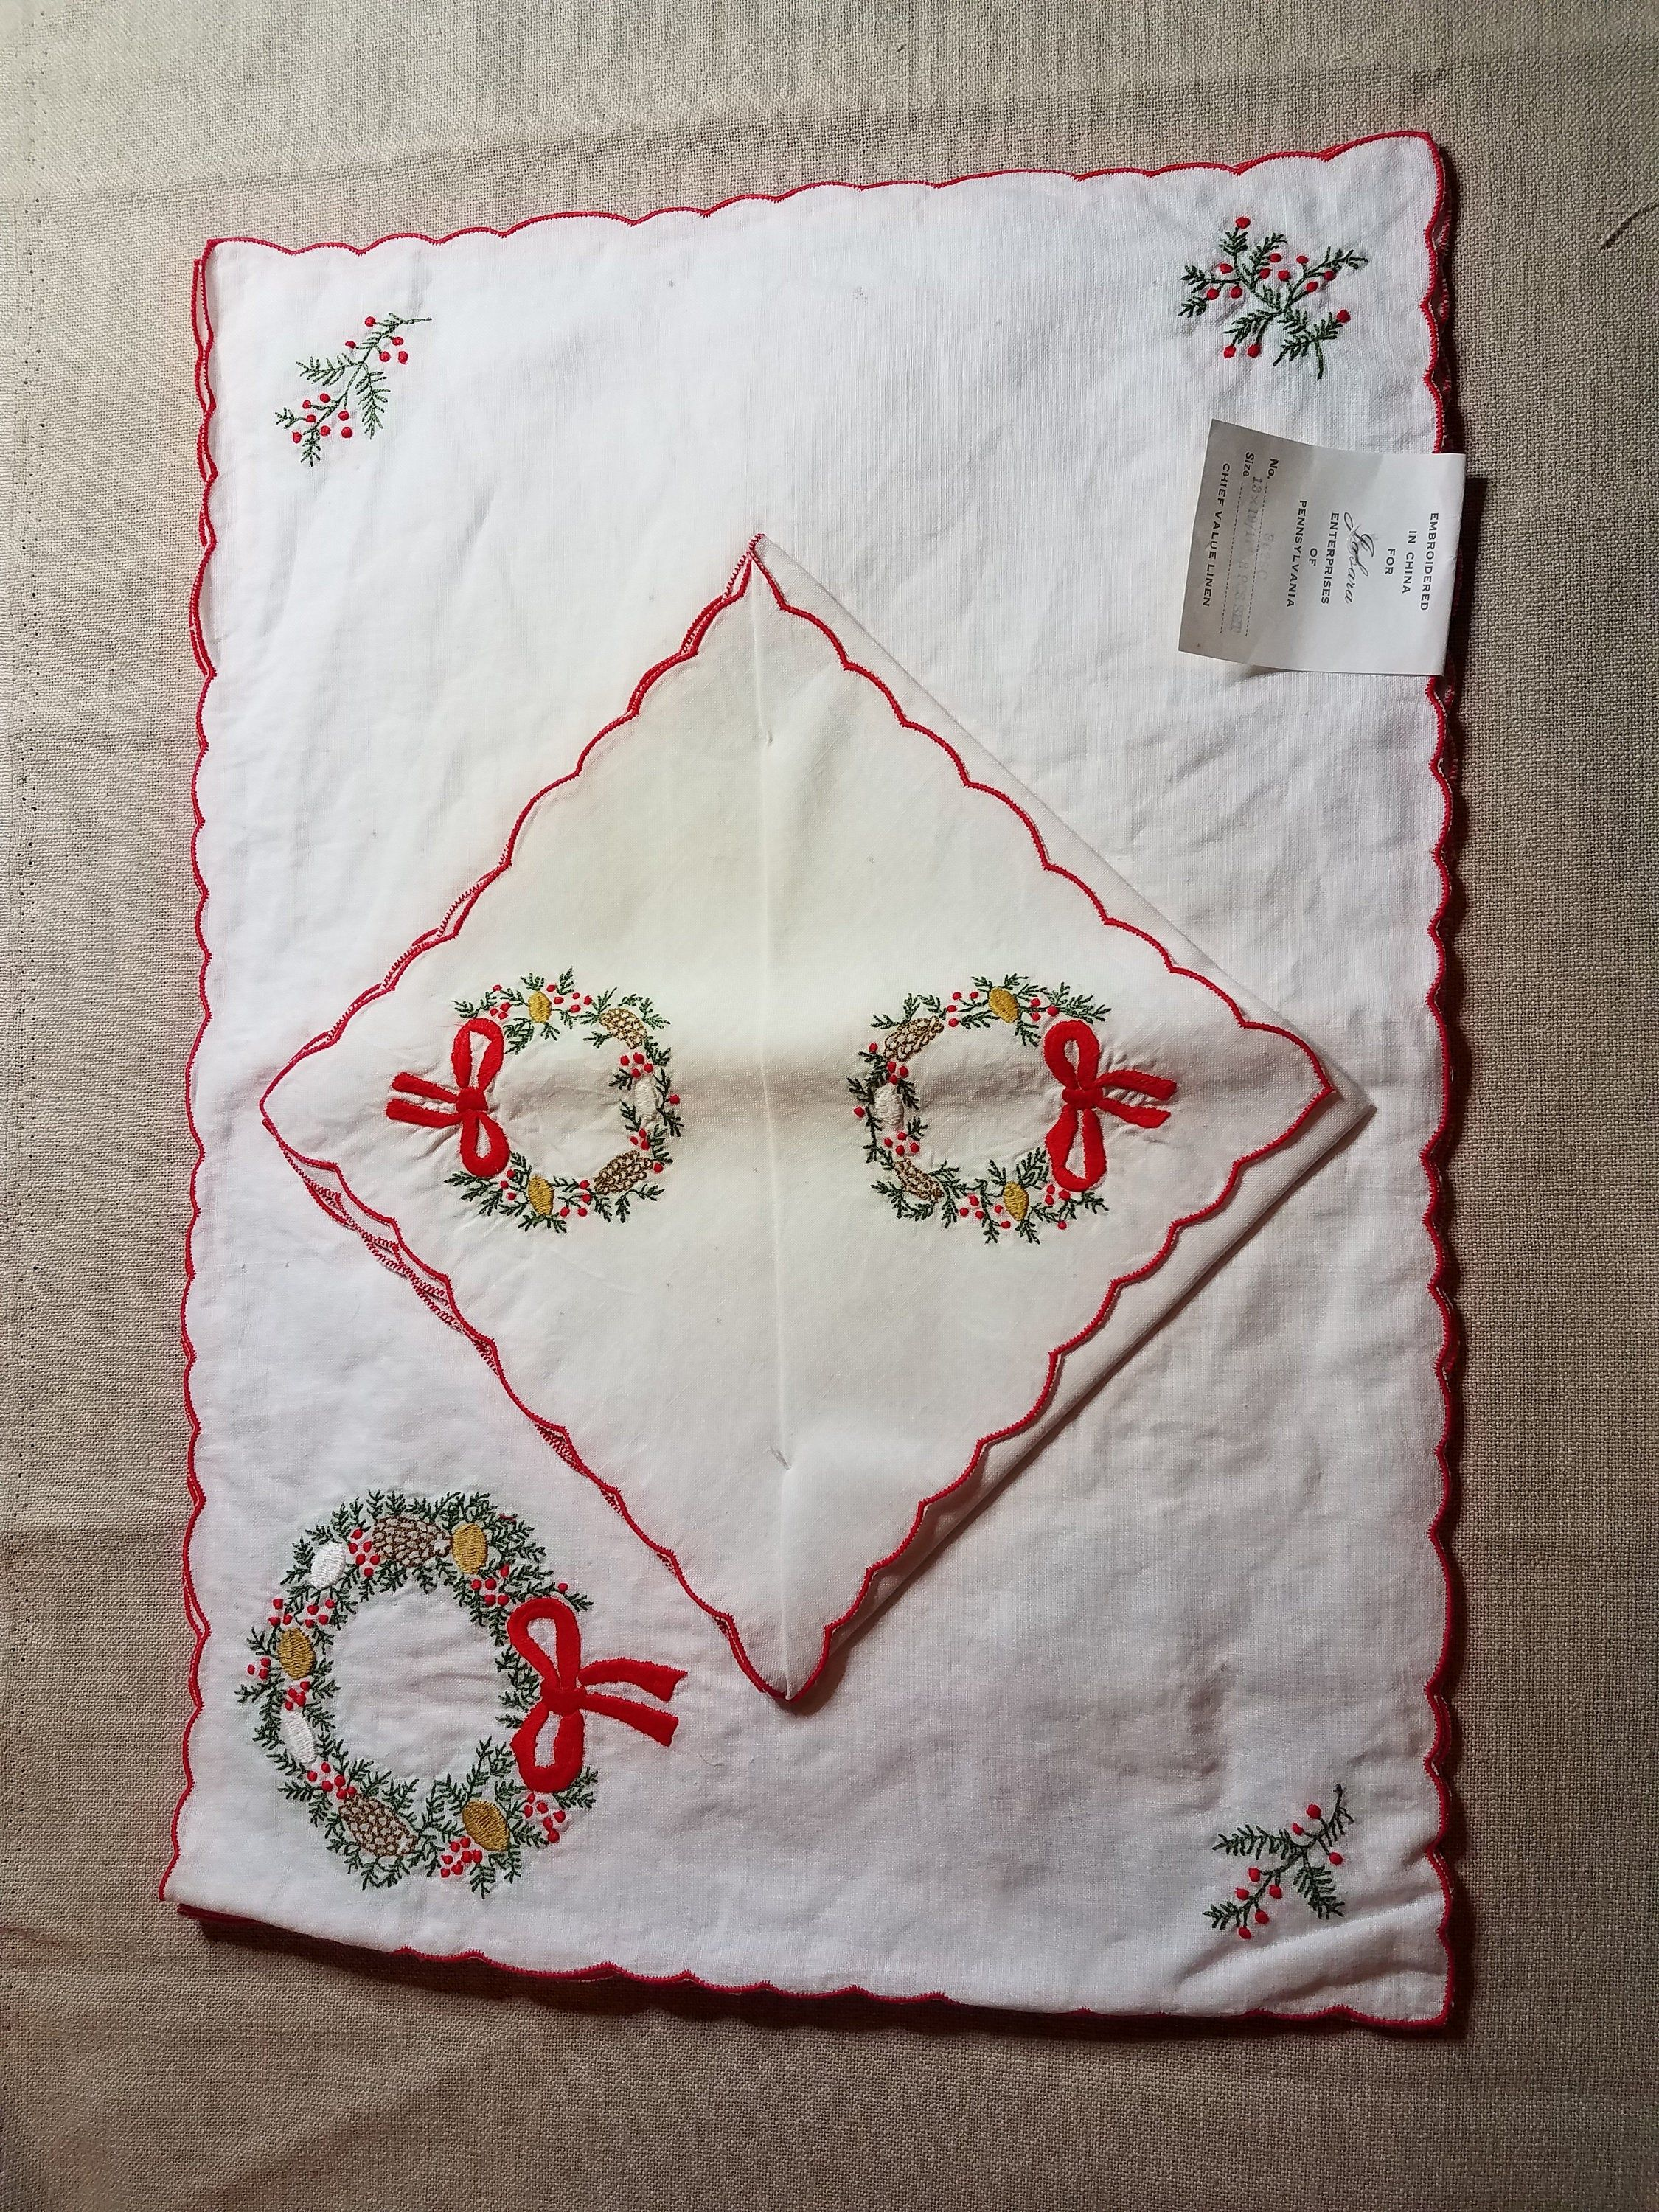 Vintage Linen Christmas Placemats And Napkin Set Vintage Etsy Christmas Placemats Vintage Linens Napkins Set